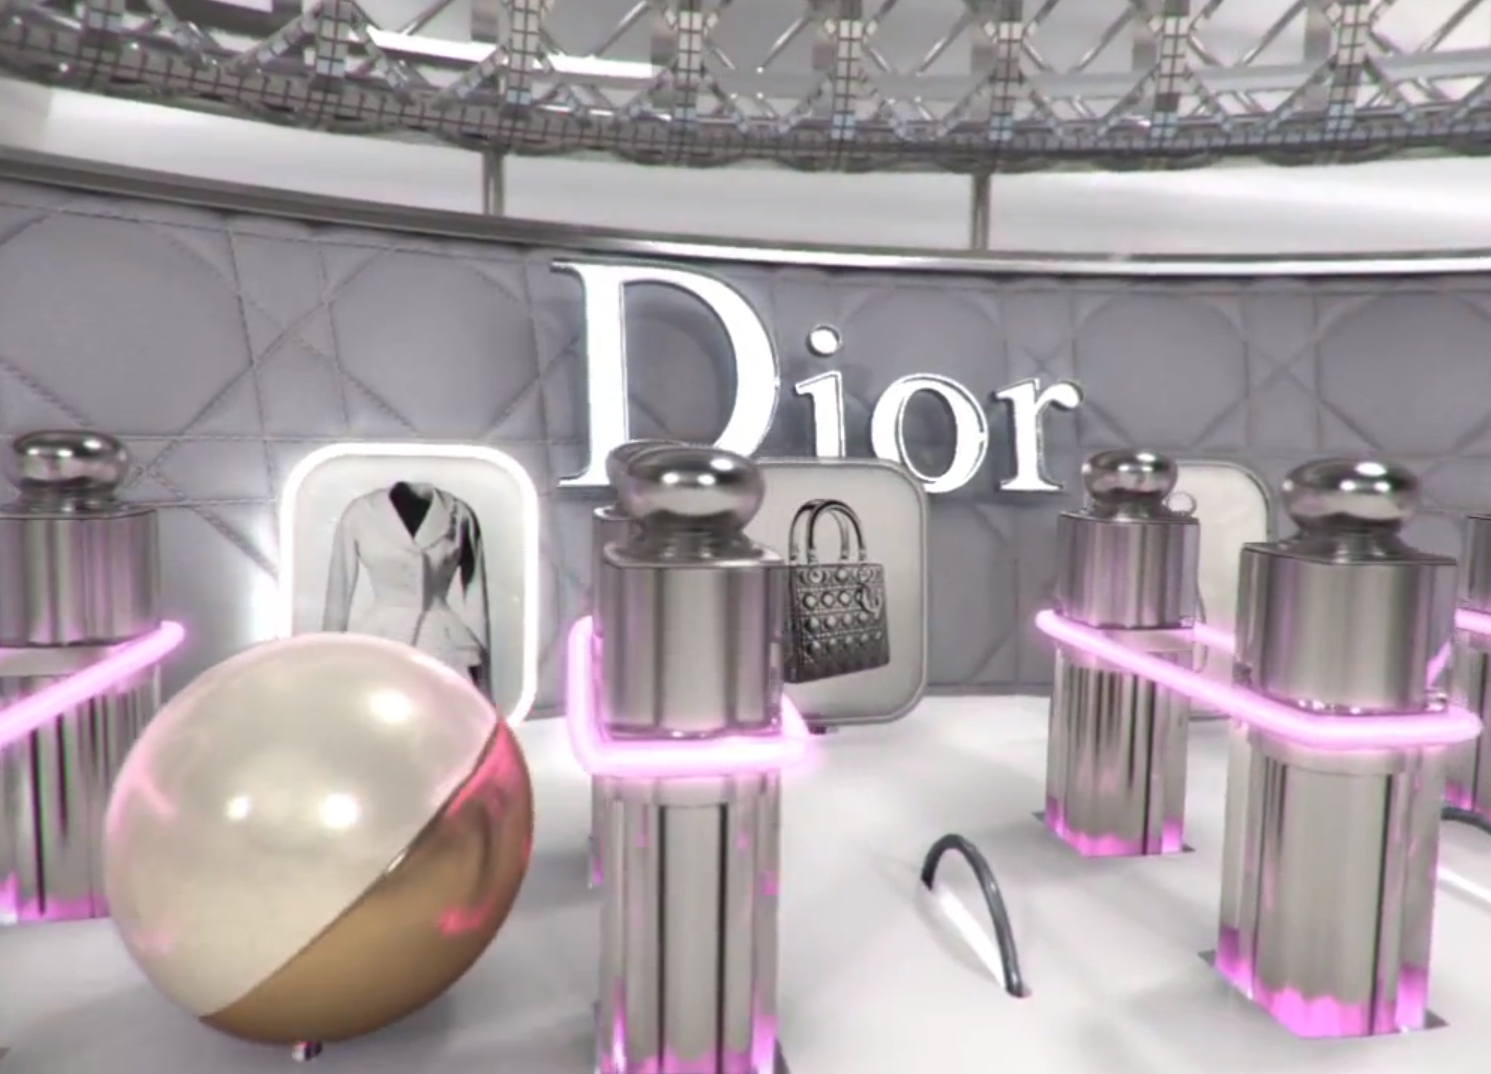 Dior logo Wallpaper